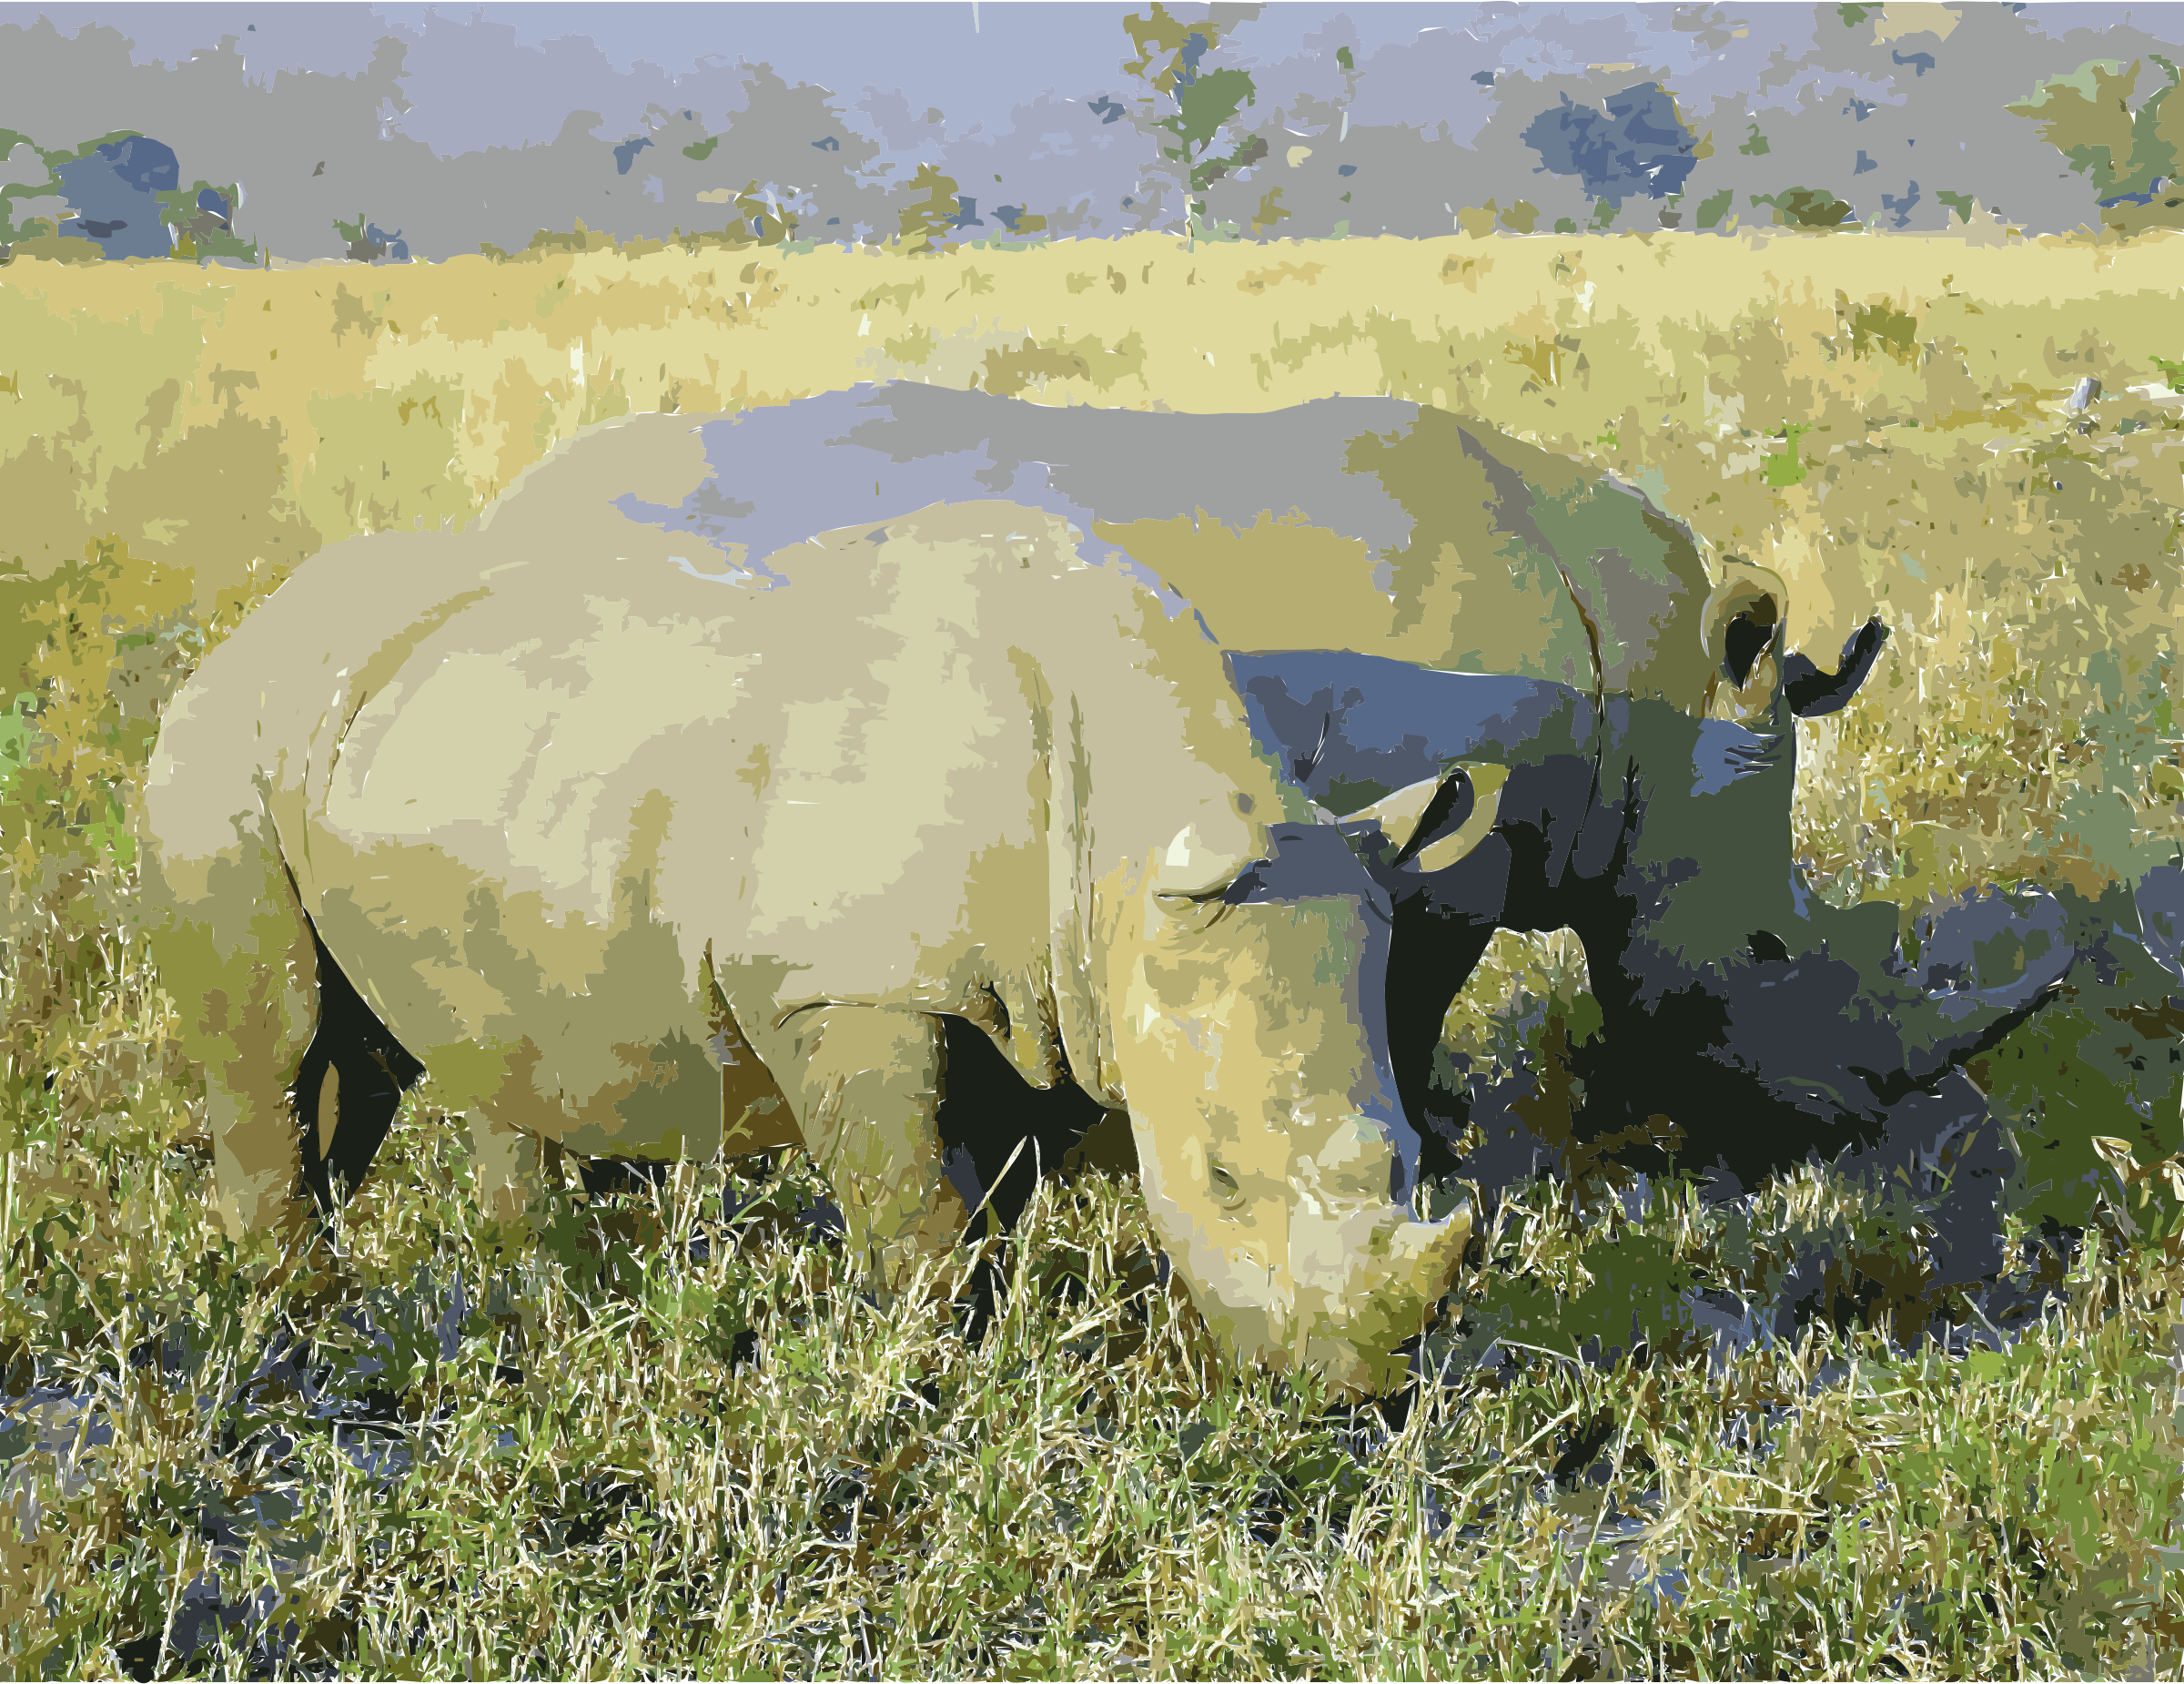 Rhinoceros in South Africa adjusted by 5mdg5m+6nb2zzxa6i3qs